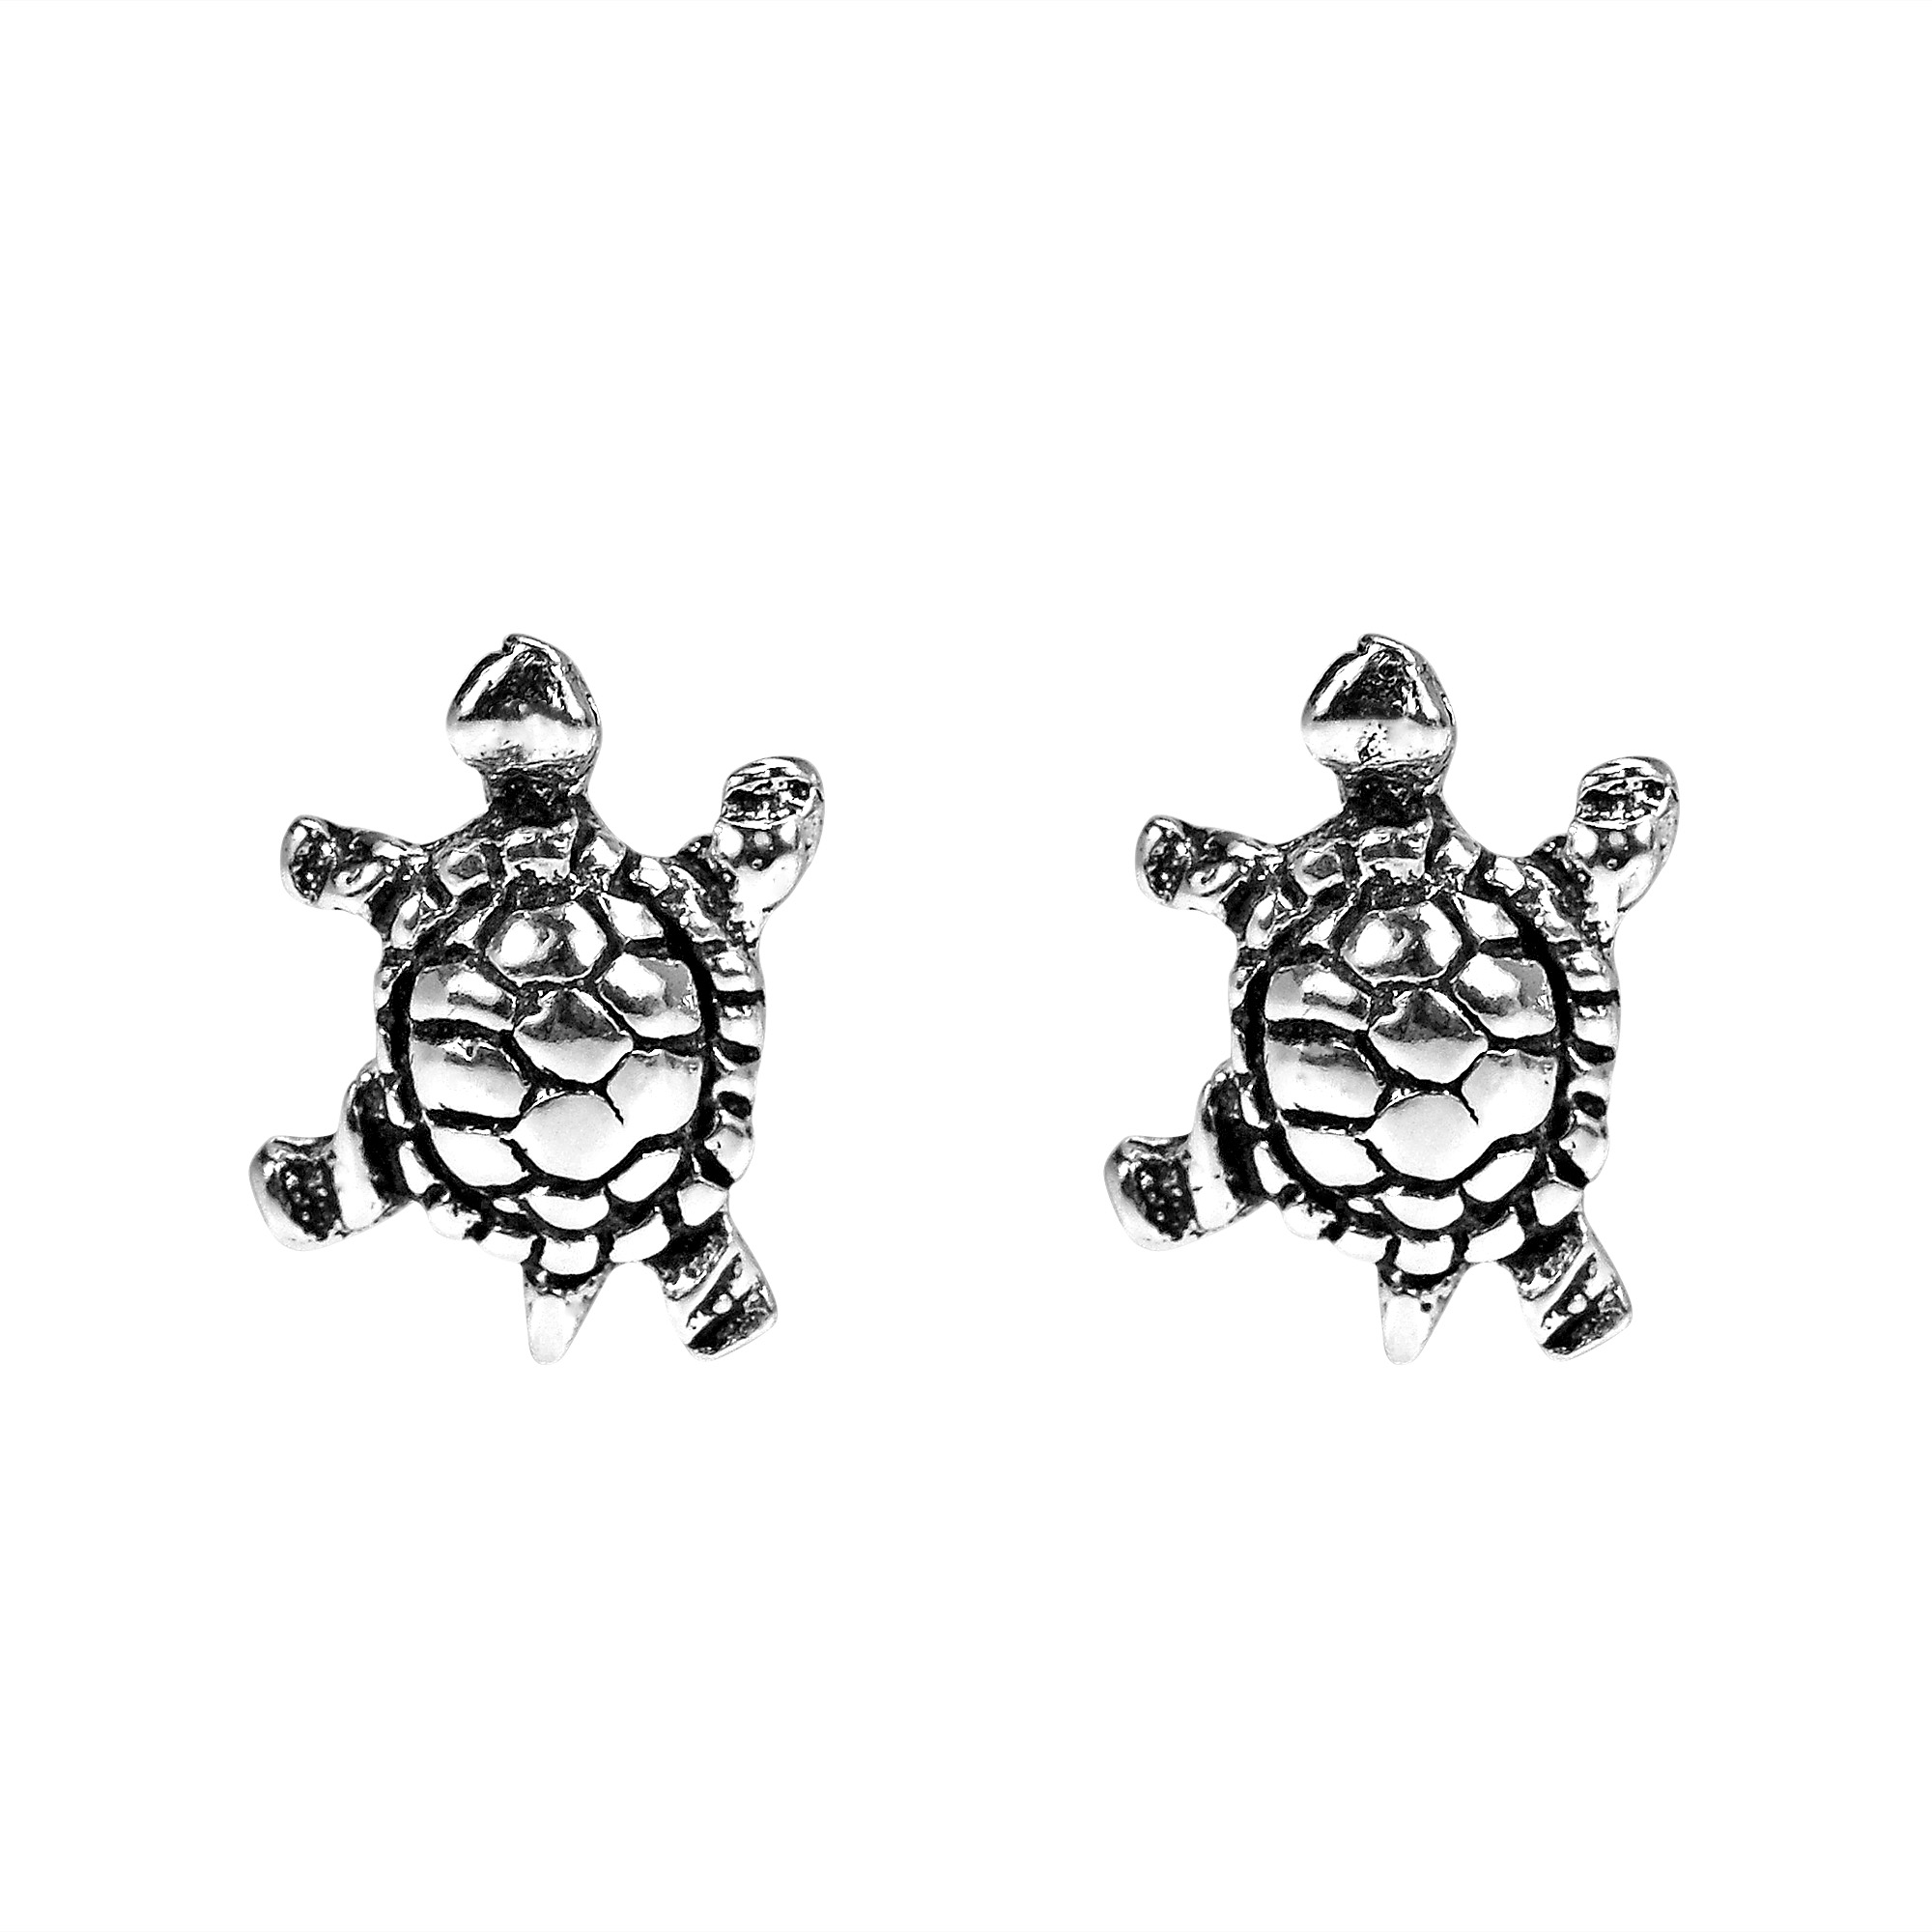 nauticalwheeler held silver earrings in image of sterling turtle product sea stud